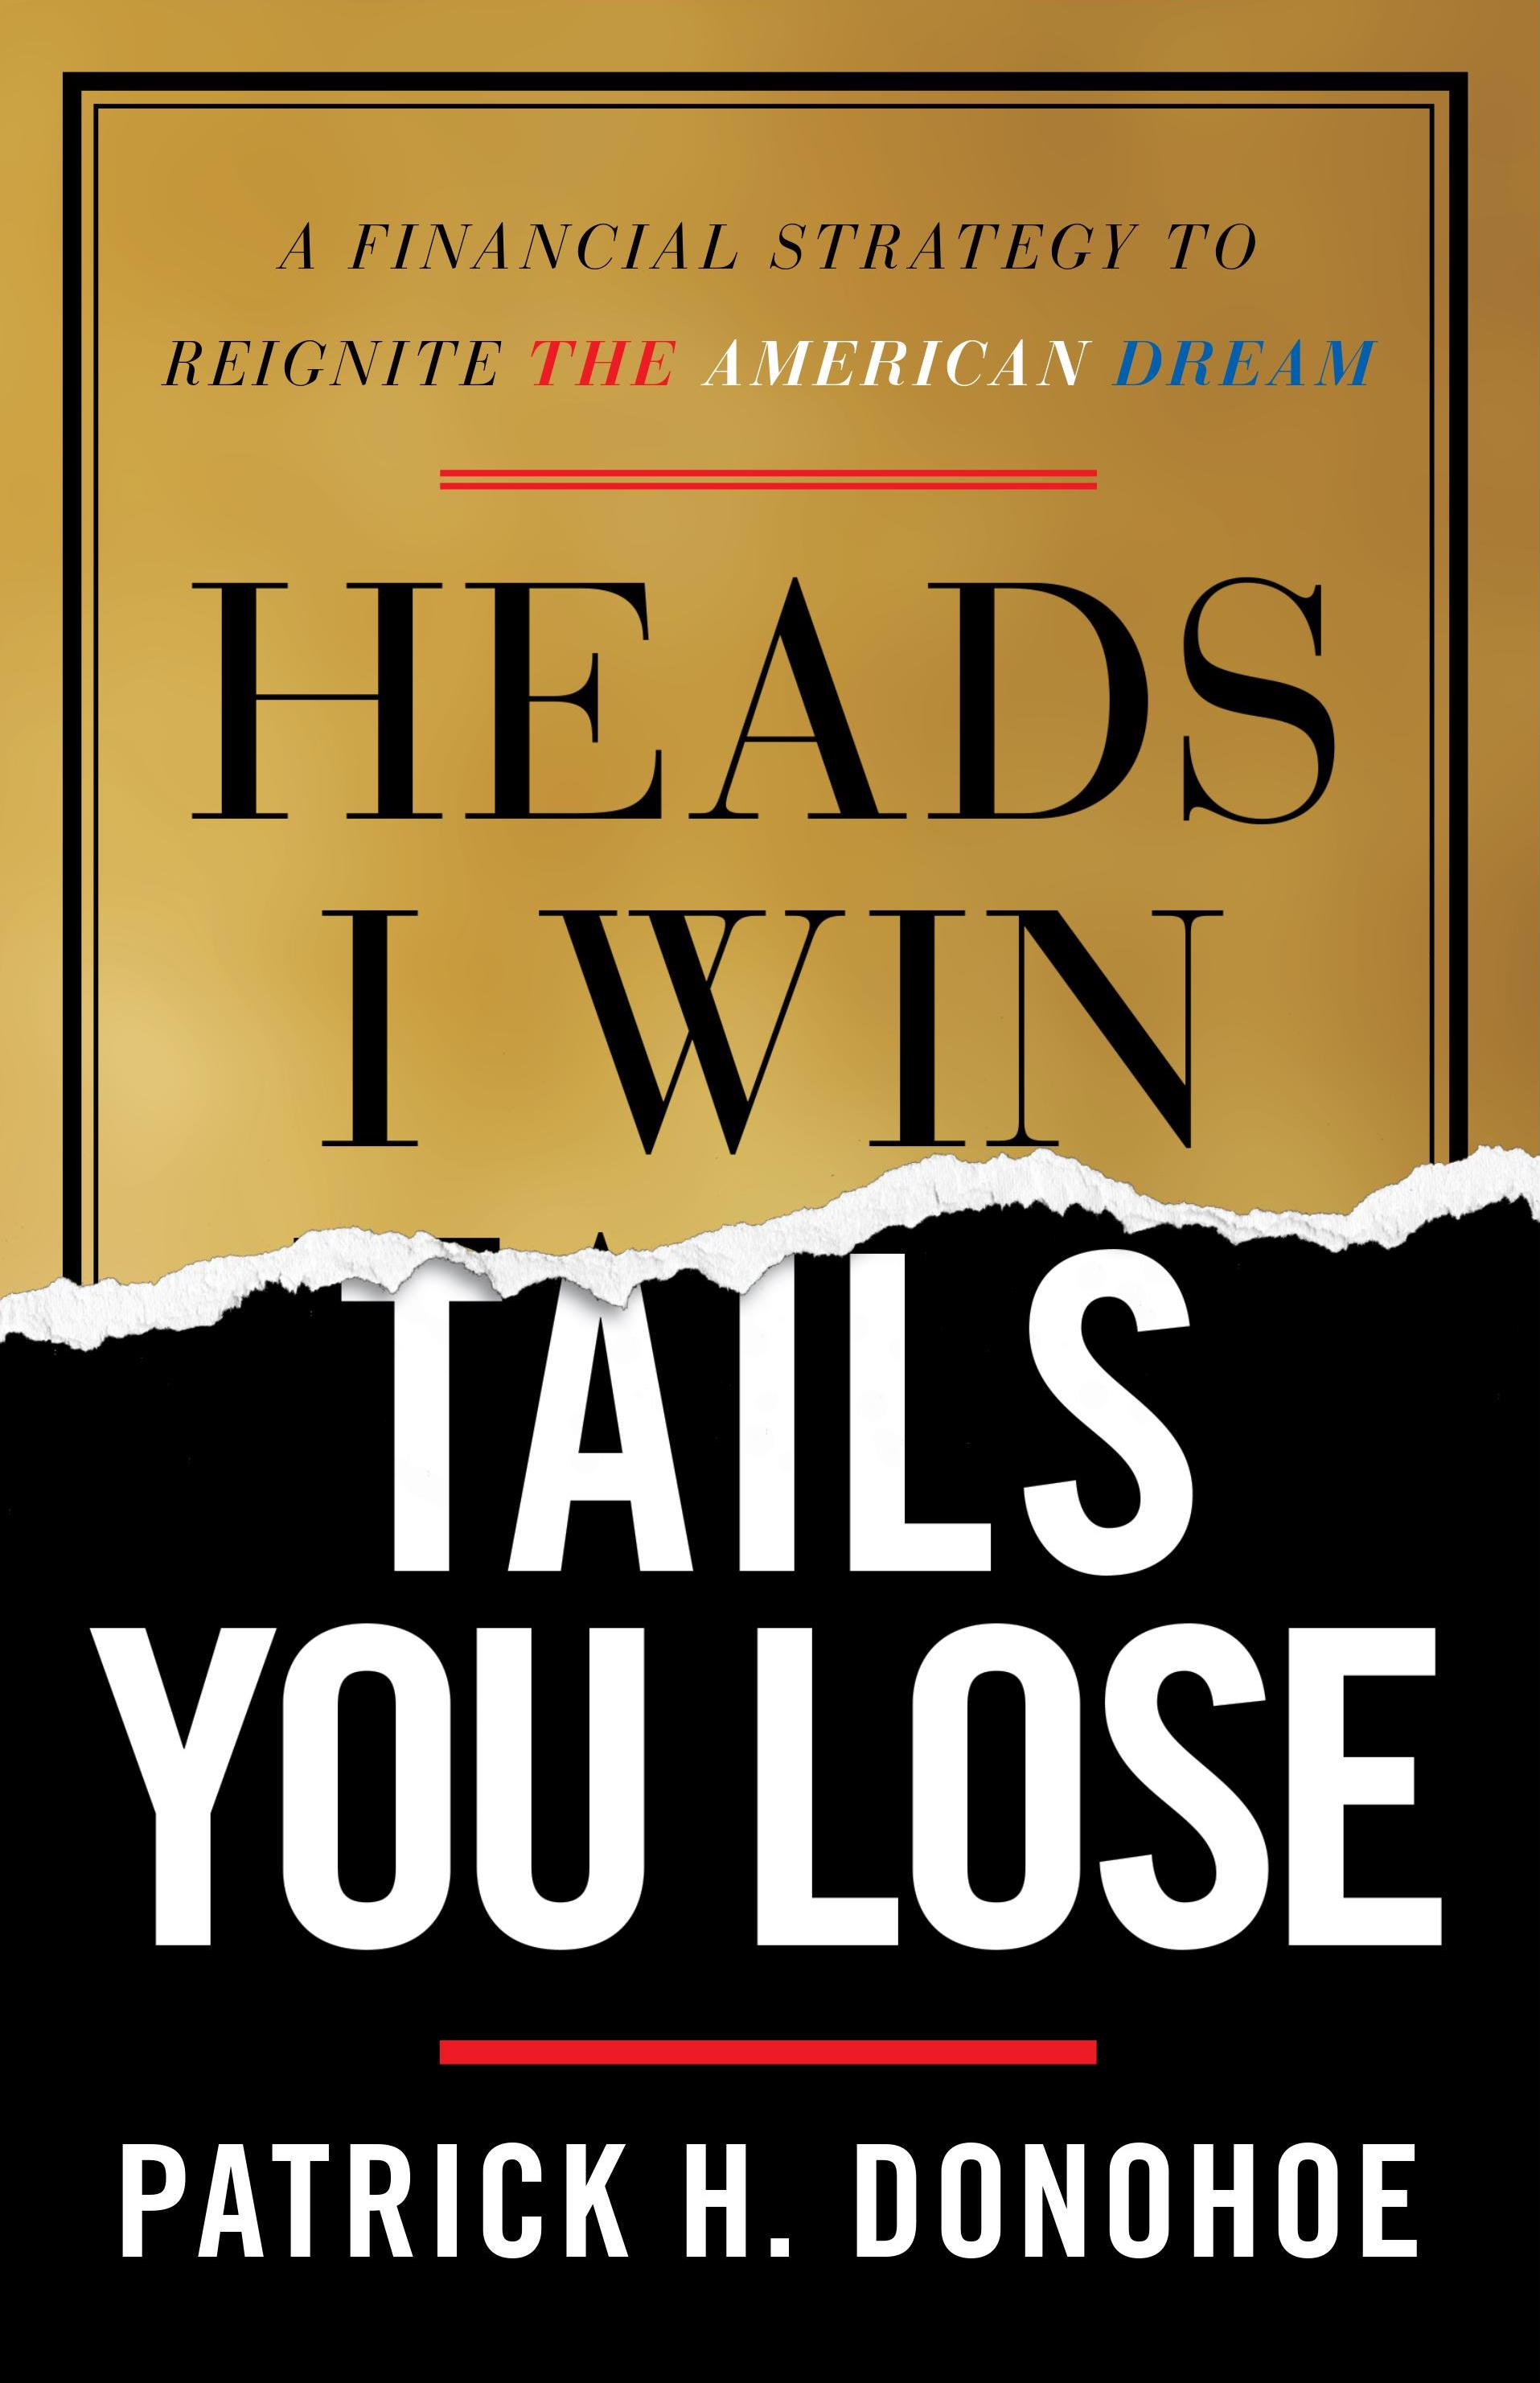 Heads I Win, Tails You Lose by Patrick H. Donohoe